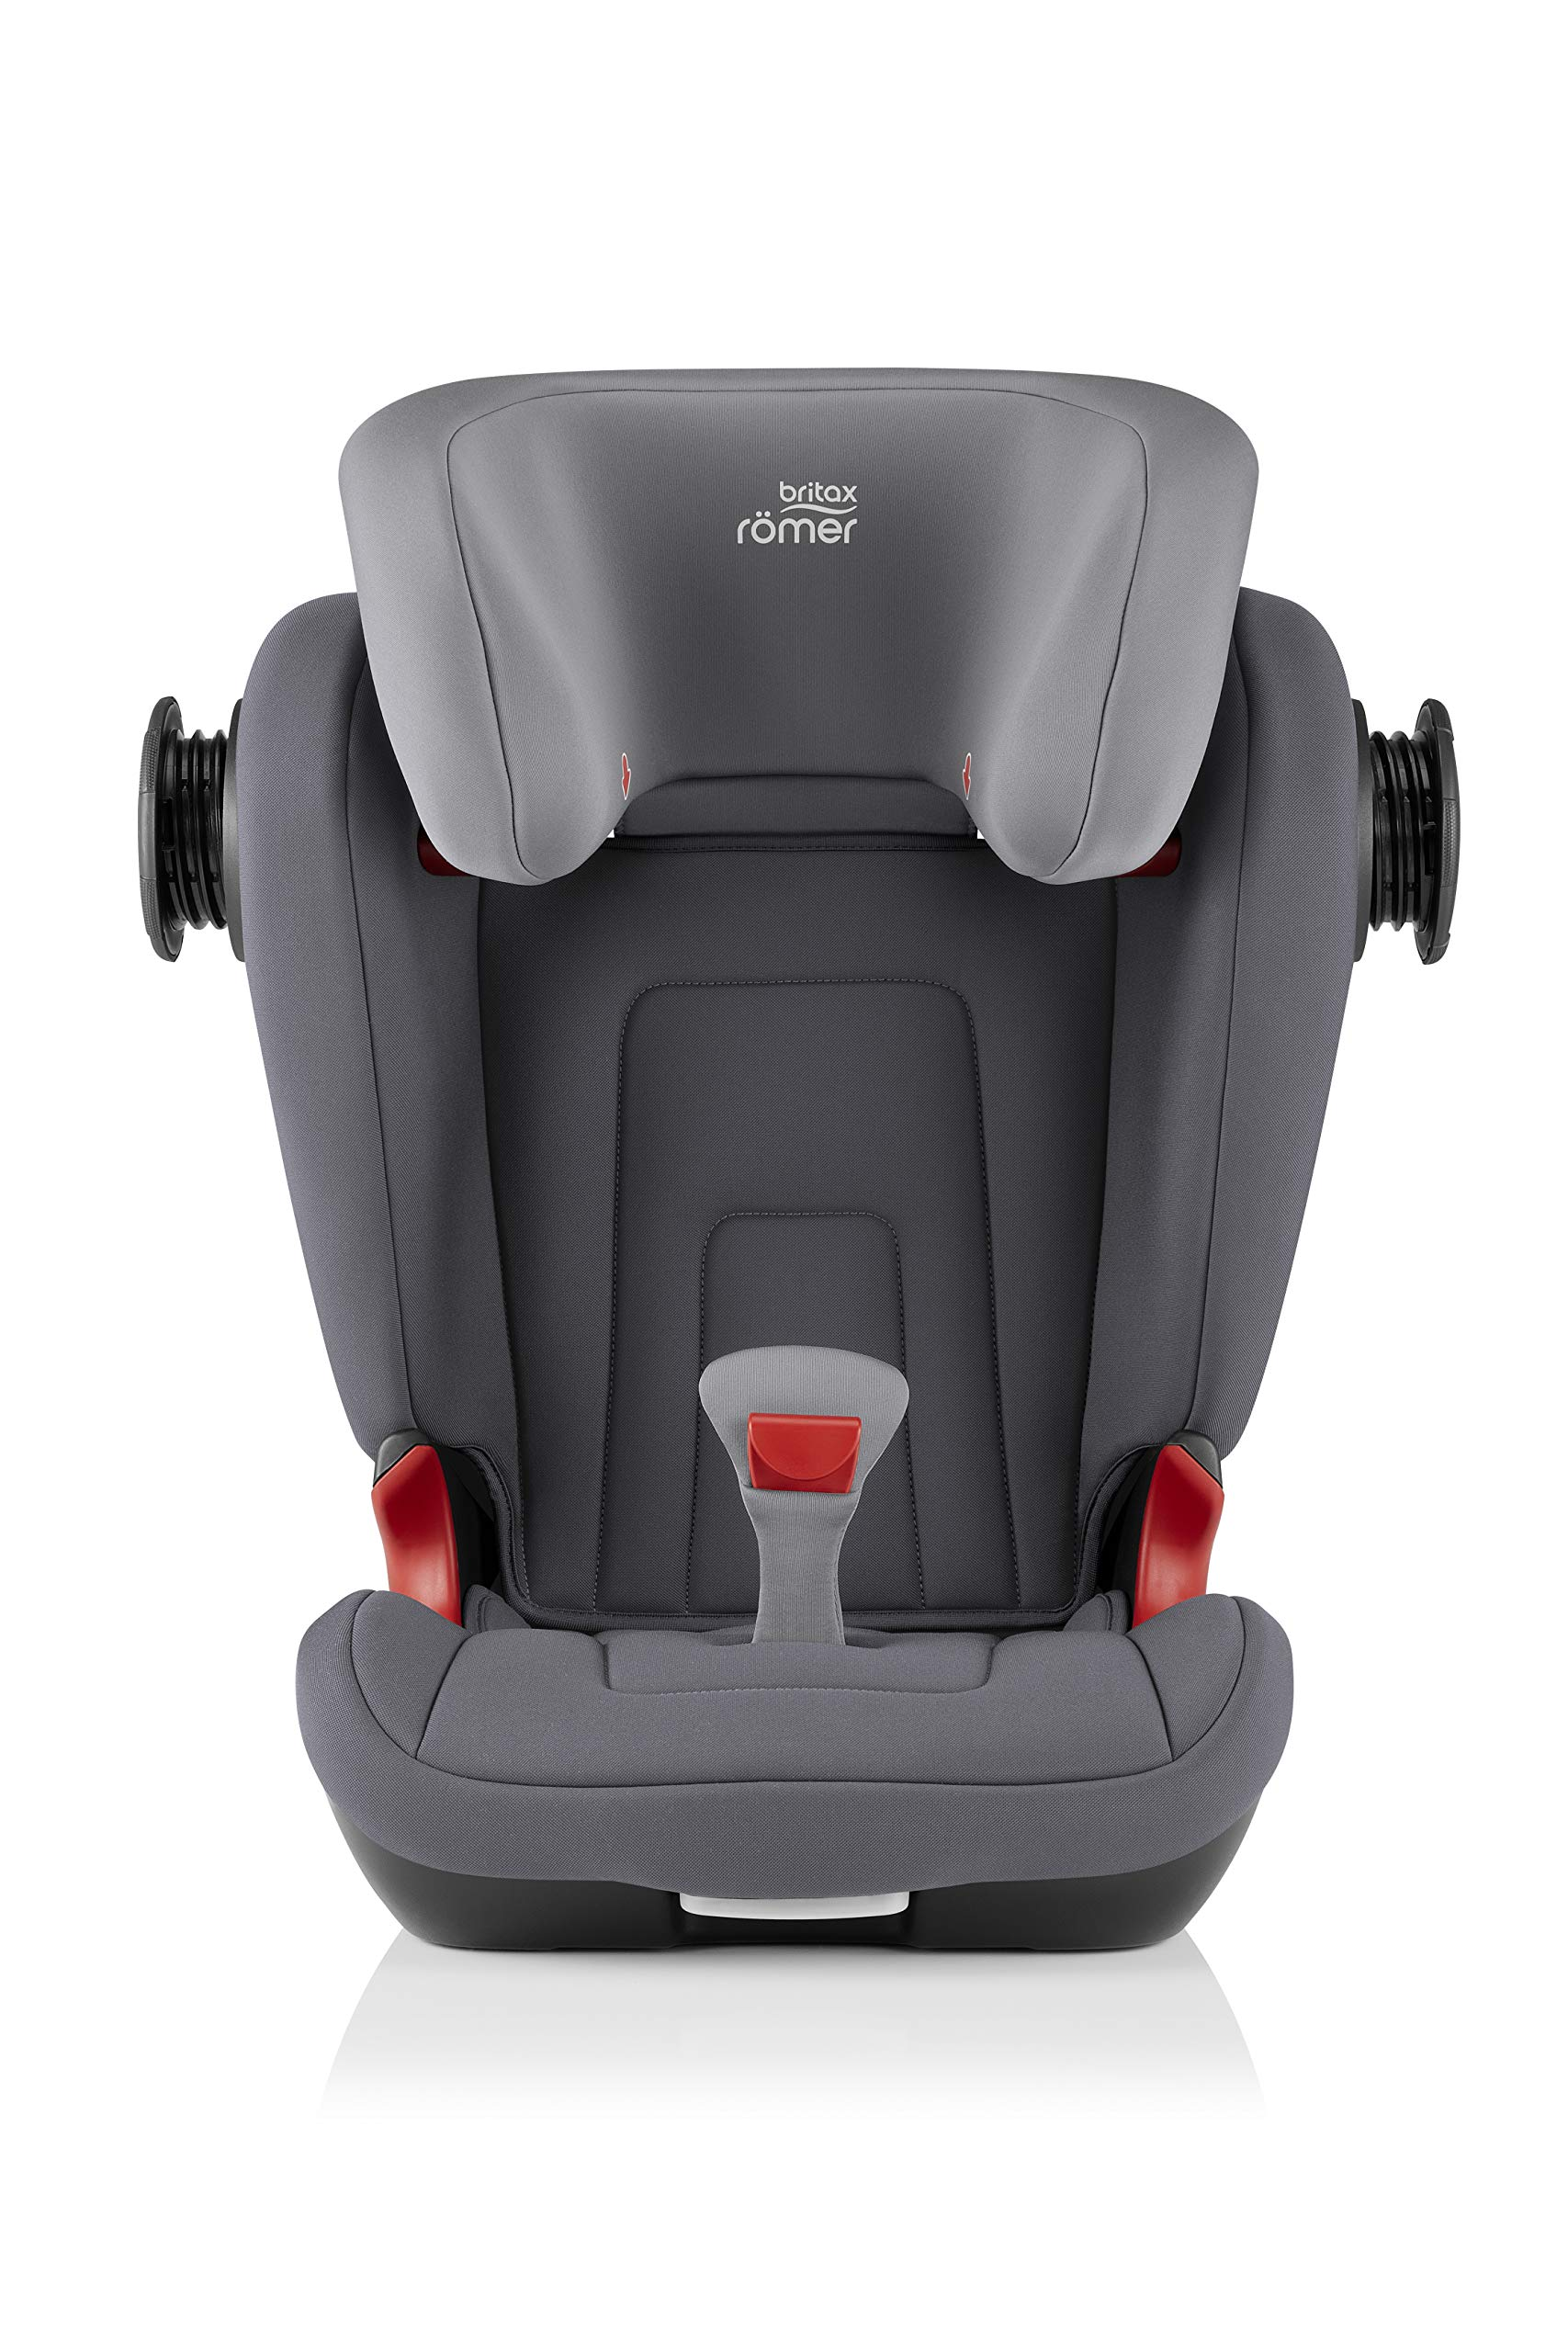 Britax Römer KIDFIX² S Group 2-3 (15-36kg) Car Seat - Storm Grey  Advanced side impact protection - sict offers superior protection to your child in the event of a side collision. reducing impact forces by minimising the distance between the car and the car seat. Secure guard - helps to protect your child's delicate abdominal area by adding an extra - a 4th - contact point to the 3-point seat belt. High back booster - protects your child in 3 ways: provides head to hip protection; belt guides provide correct positioning of the seat belt and the padded headrest provides safety and comfort. 6